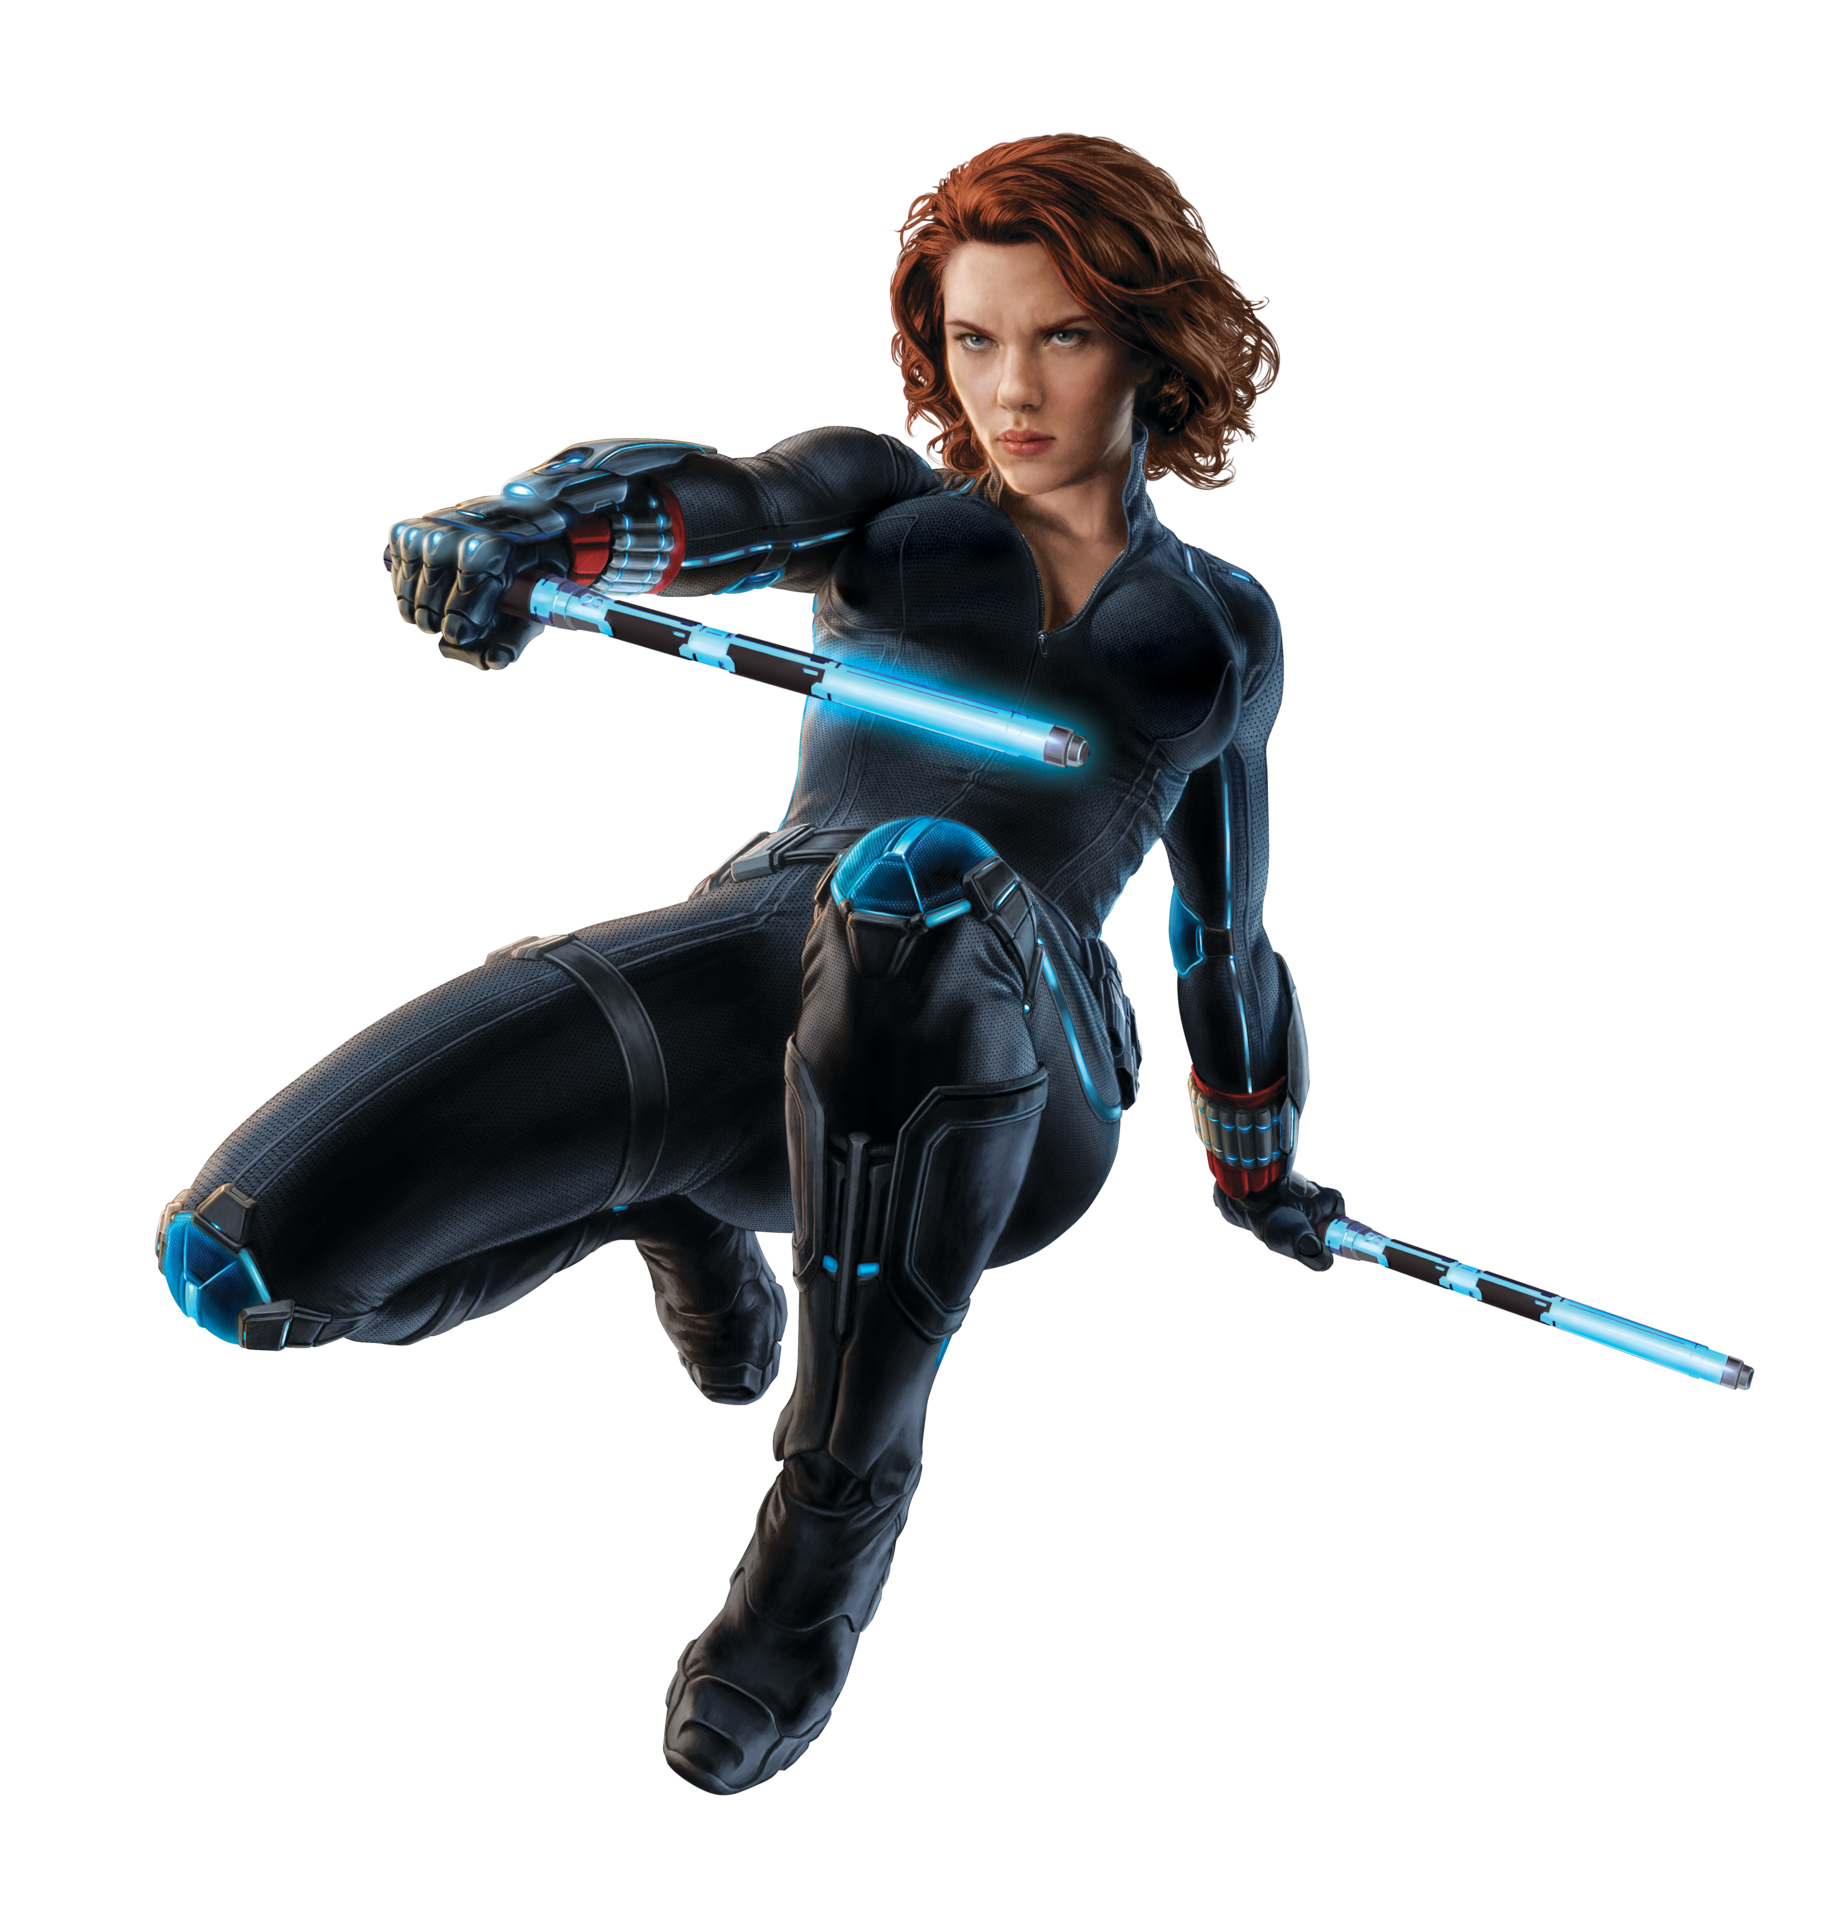 Image - AoU Black Widow 0005.png | Marvel Cinematic Universe Wiki ...